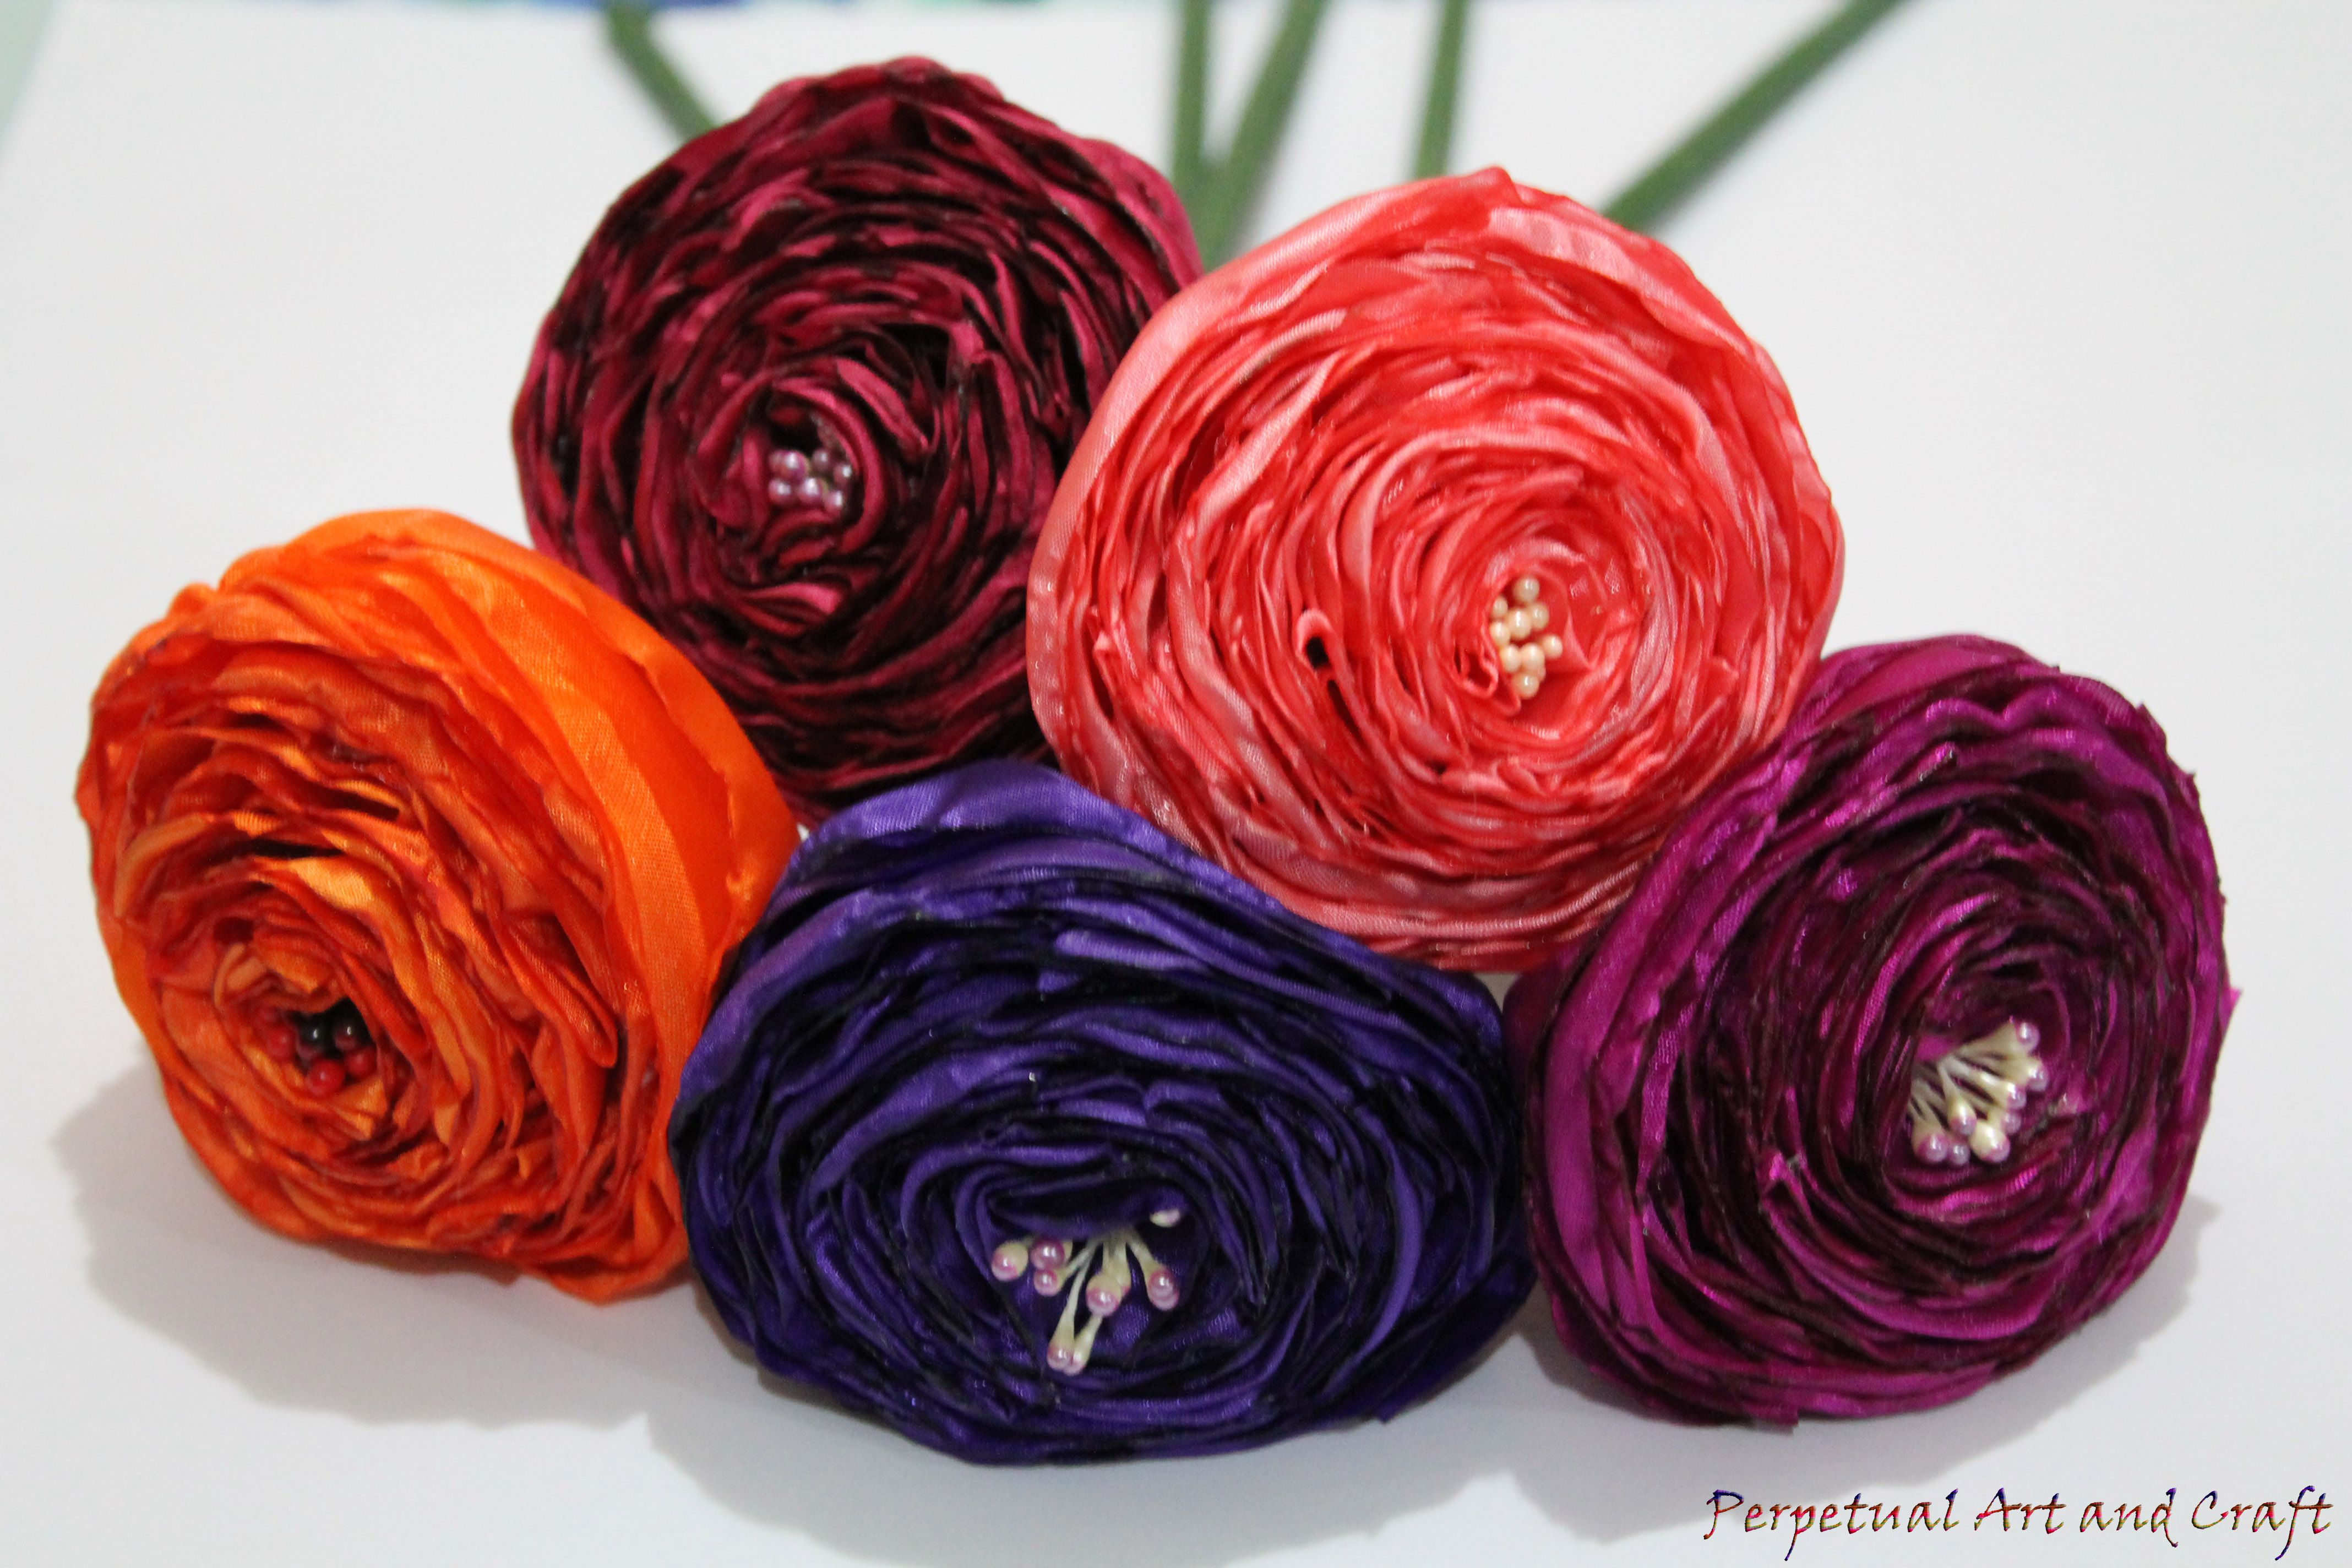 Rolled rosettes handcrafted with silk fabric